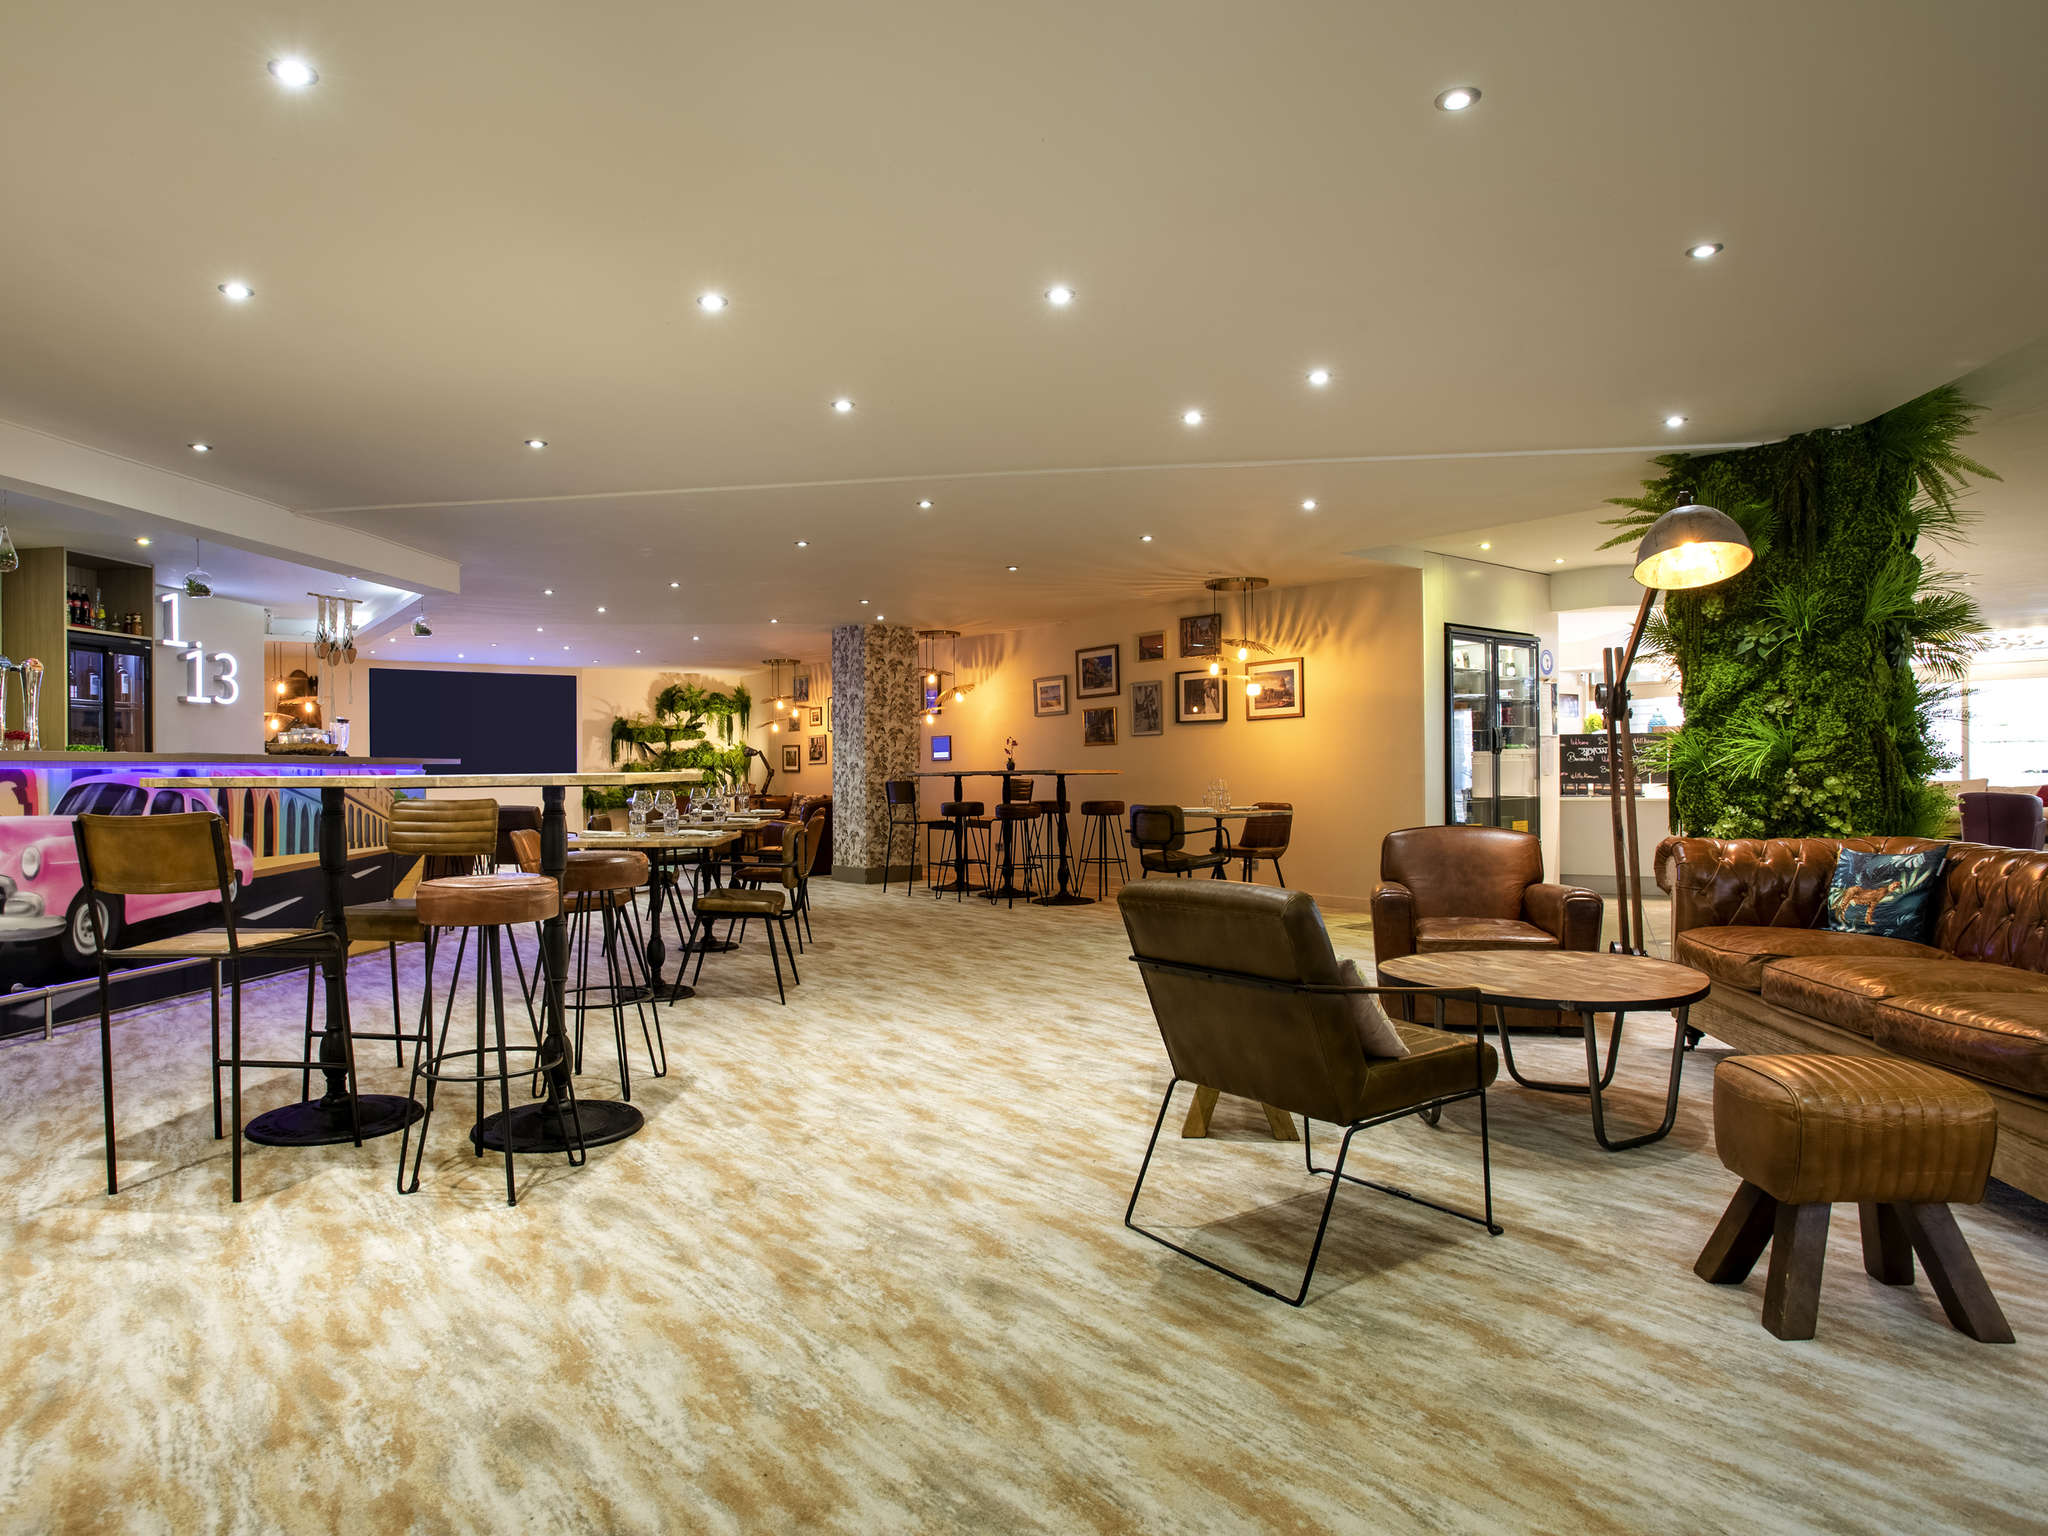 Hotell – Mercure Marseille Centre Vieux Port Hotel